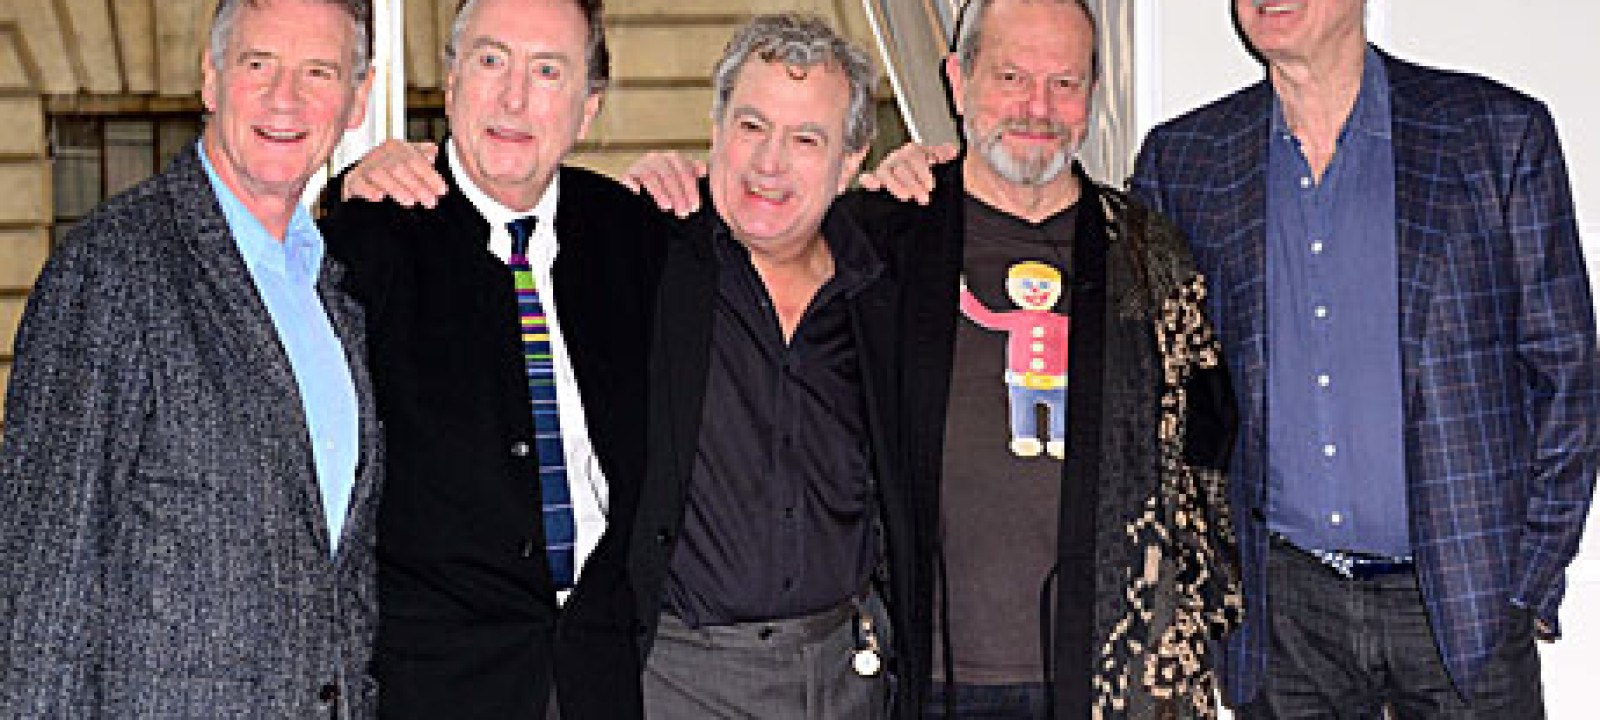 The Monty Python team 2013